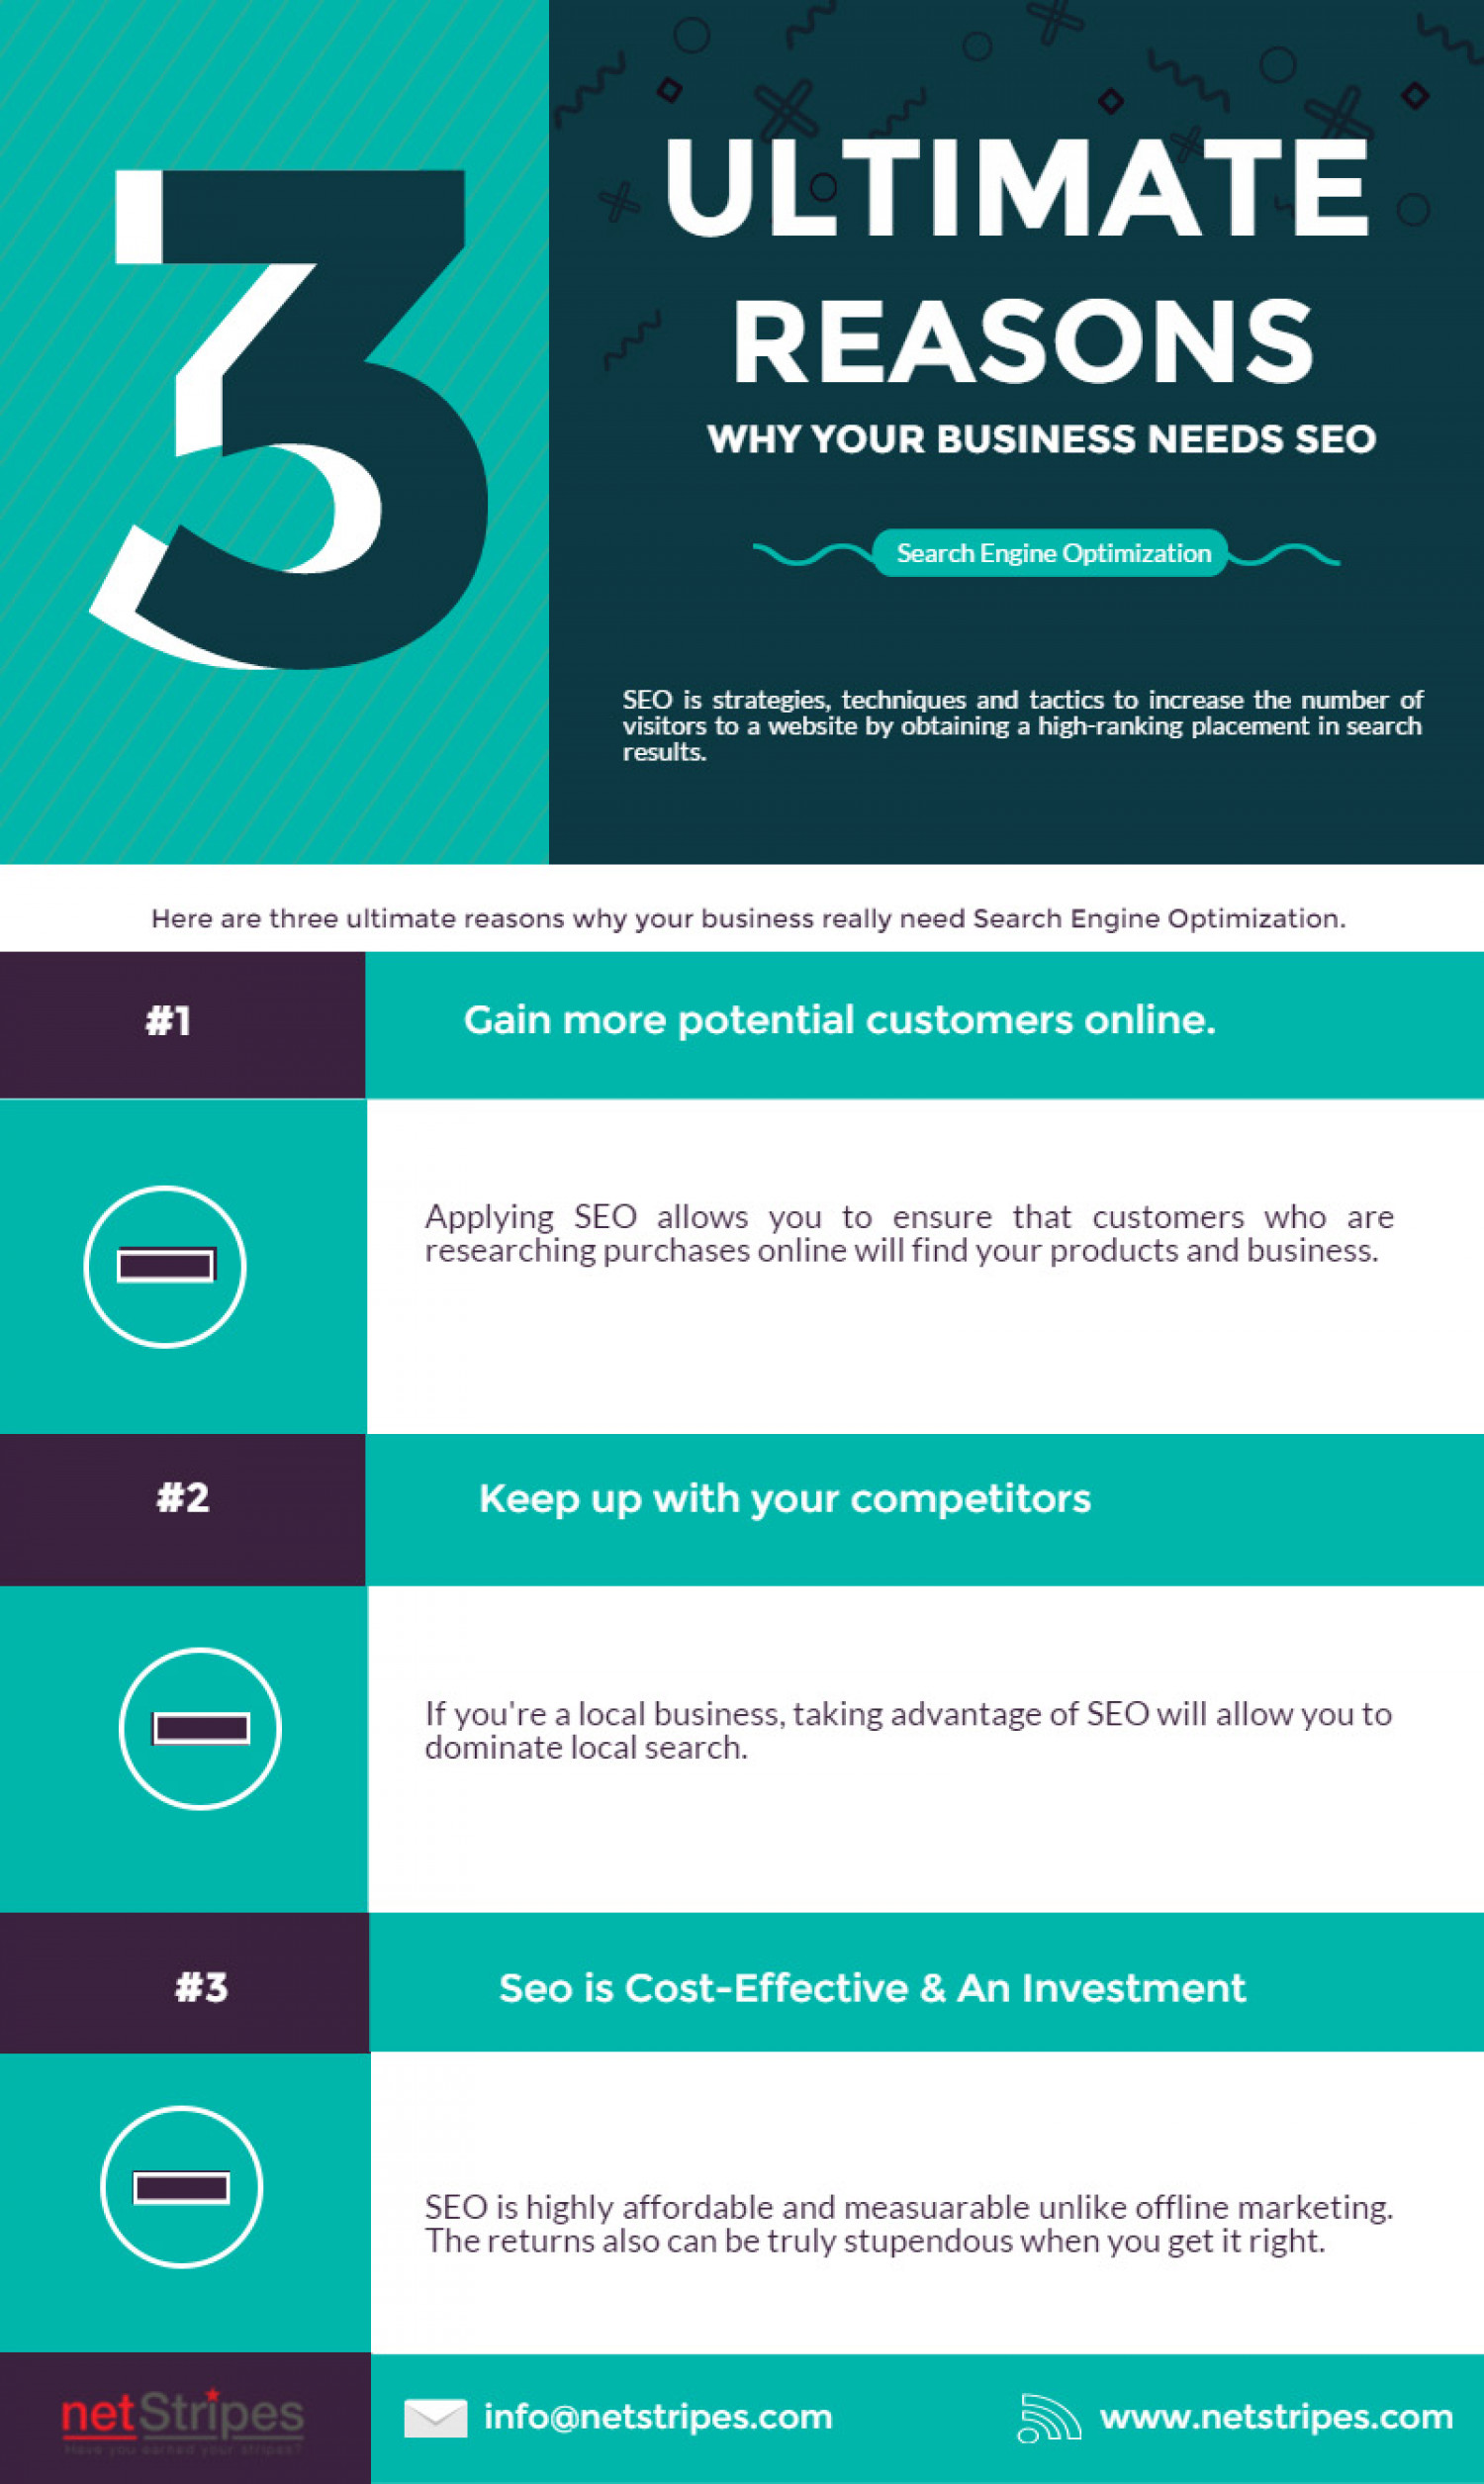 Ultimate Reasons Why Your Business Needs SEO Infographic